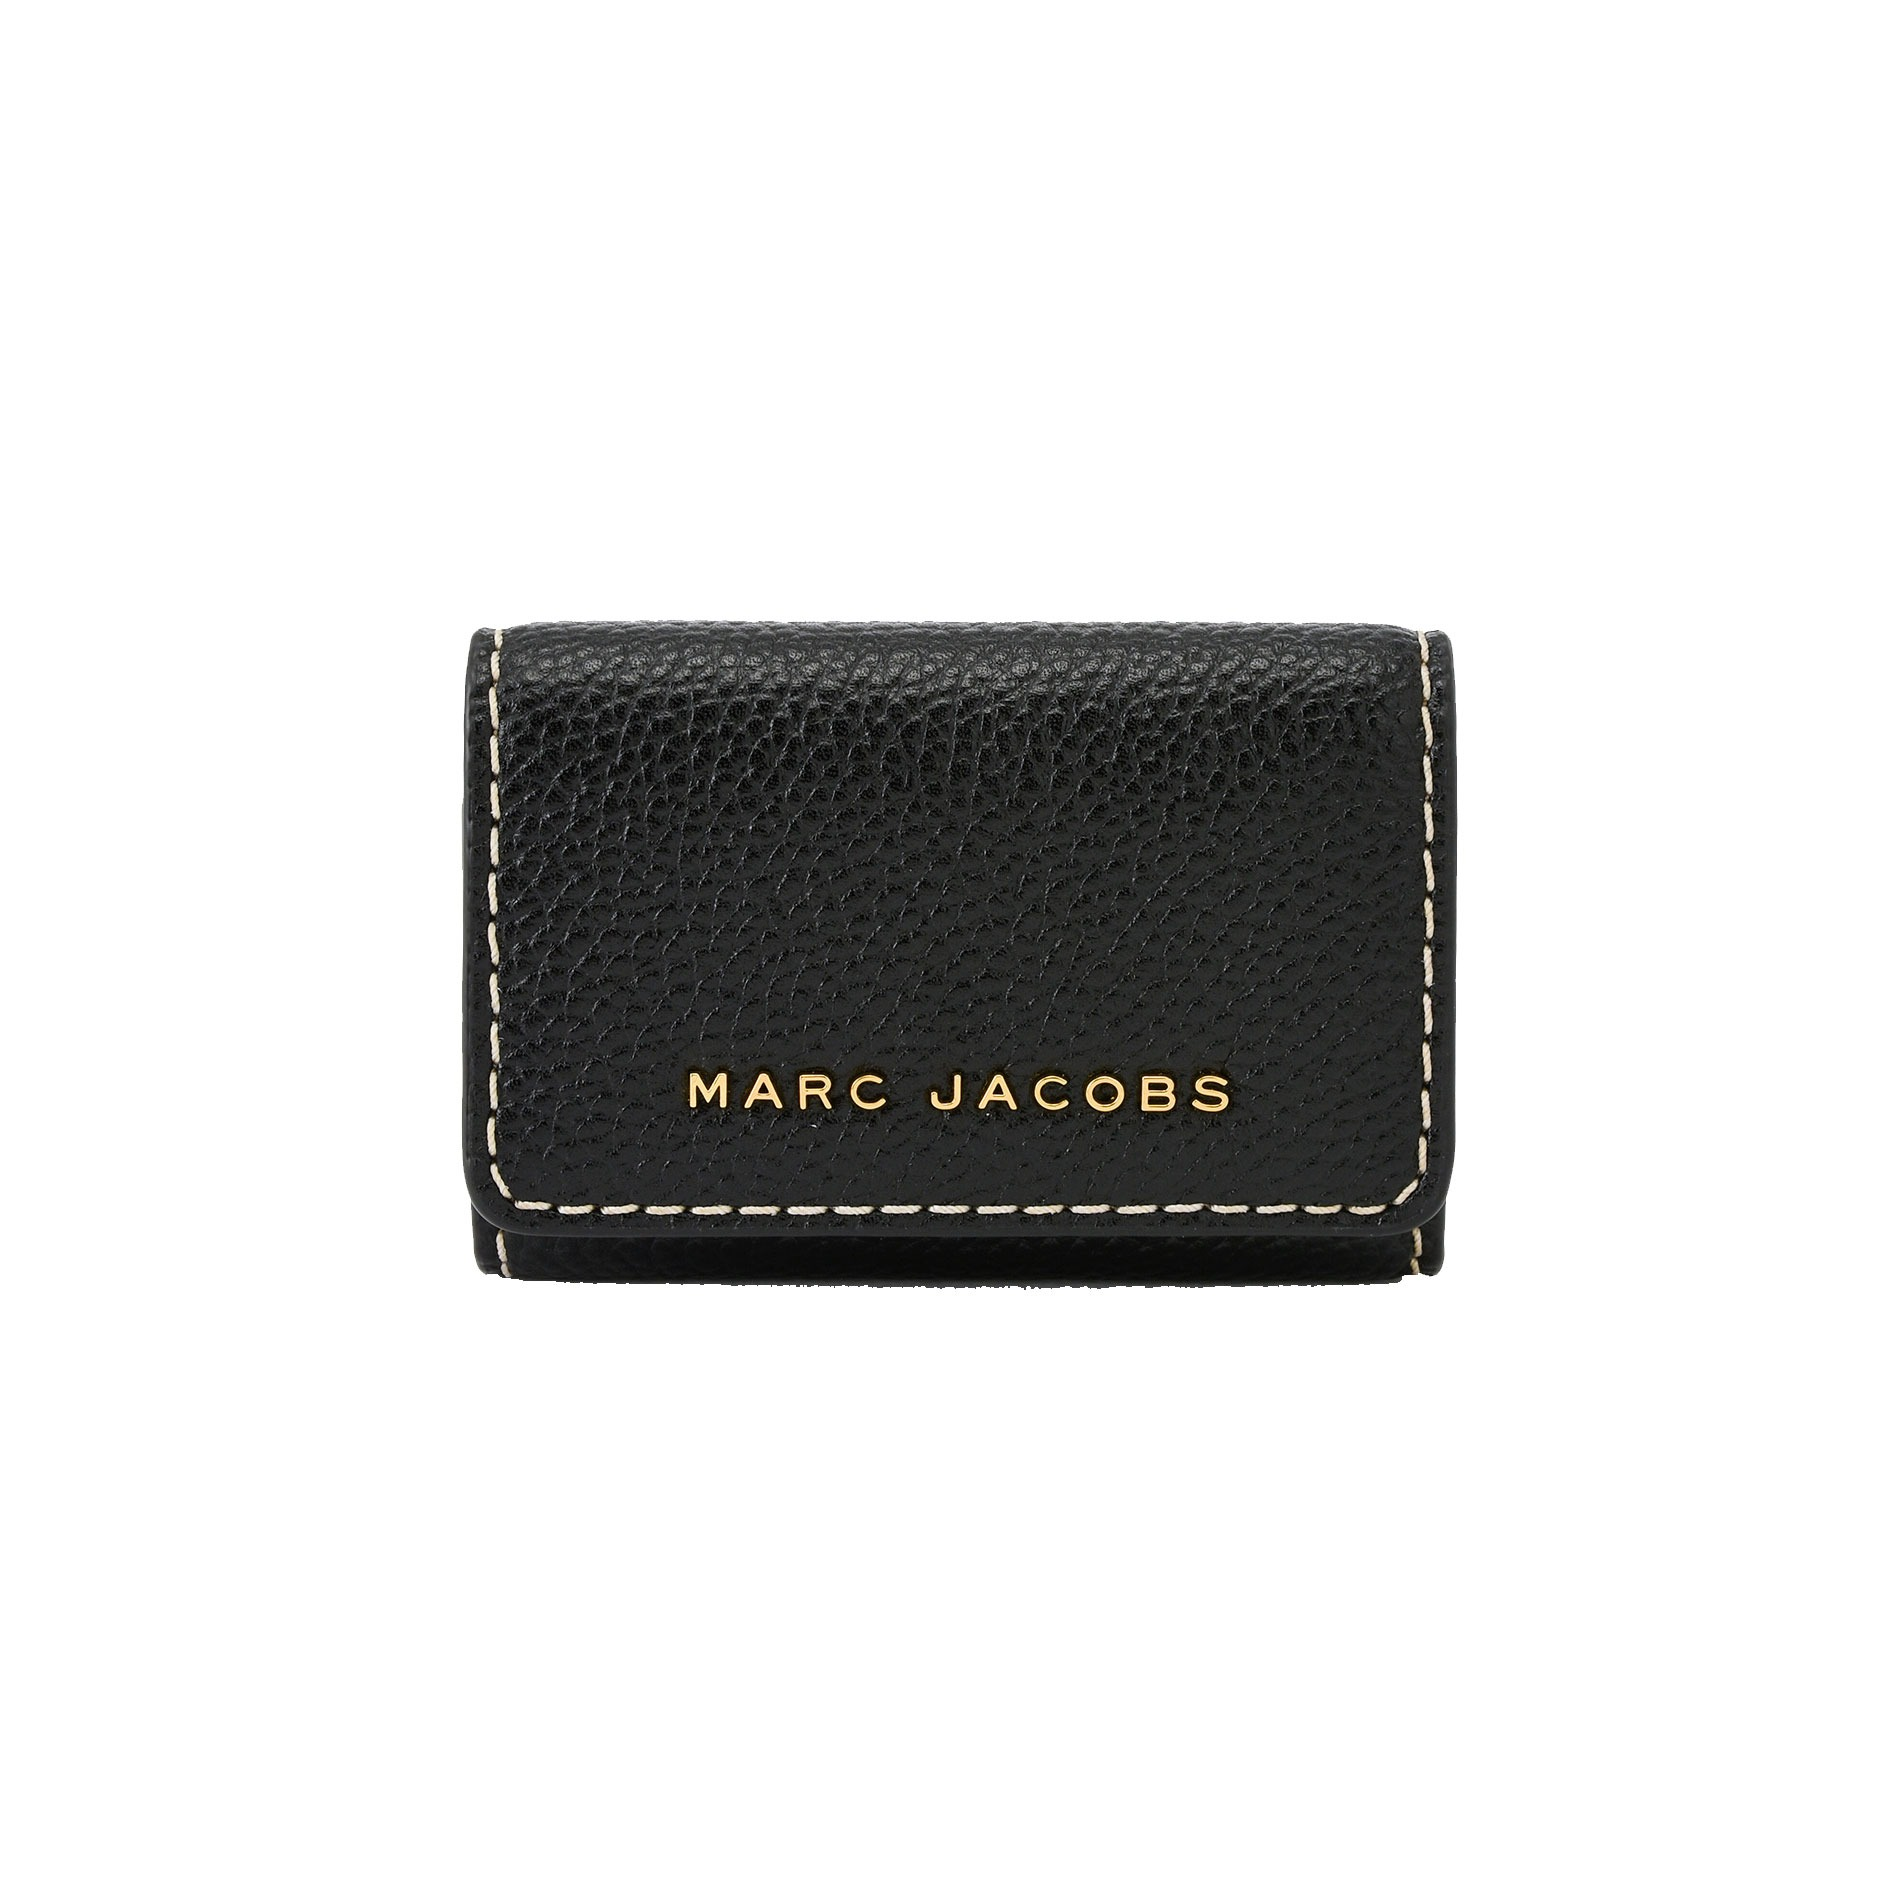 a83365fc965 Marc Jacobs - The Grind Nøglepung, Black - Phigo Fine Luxury